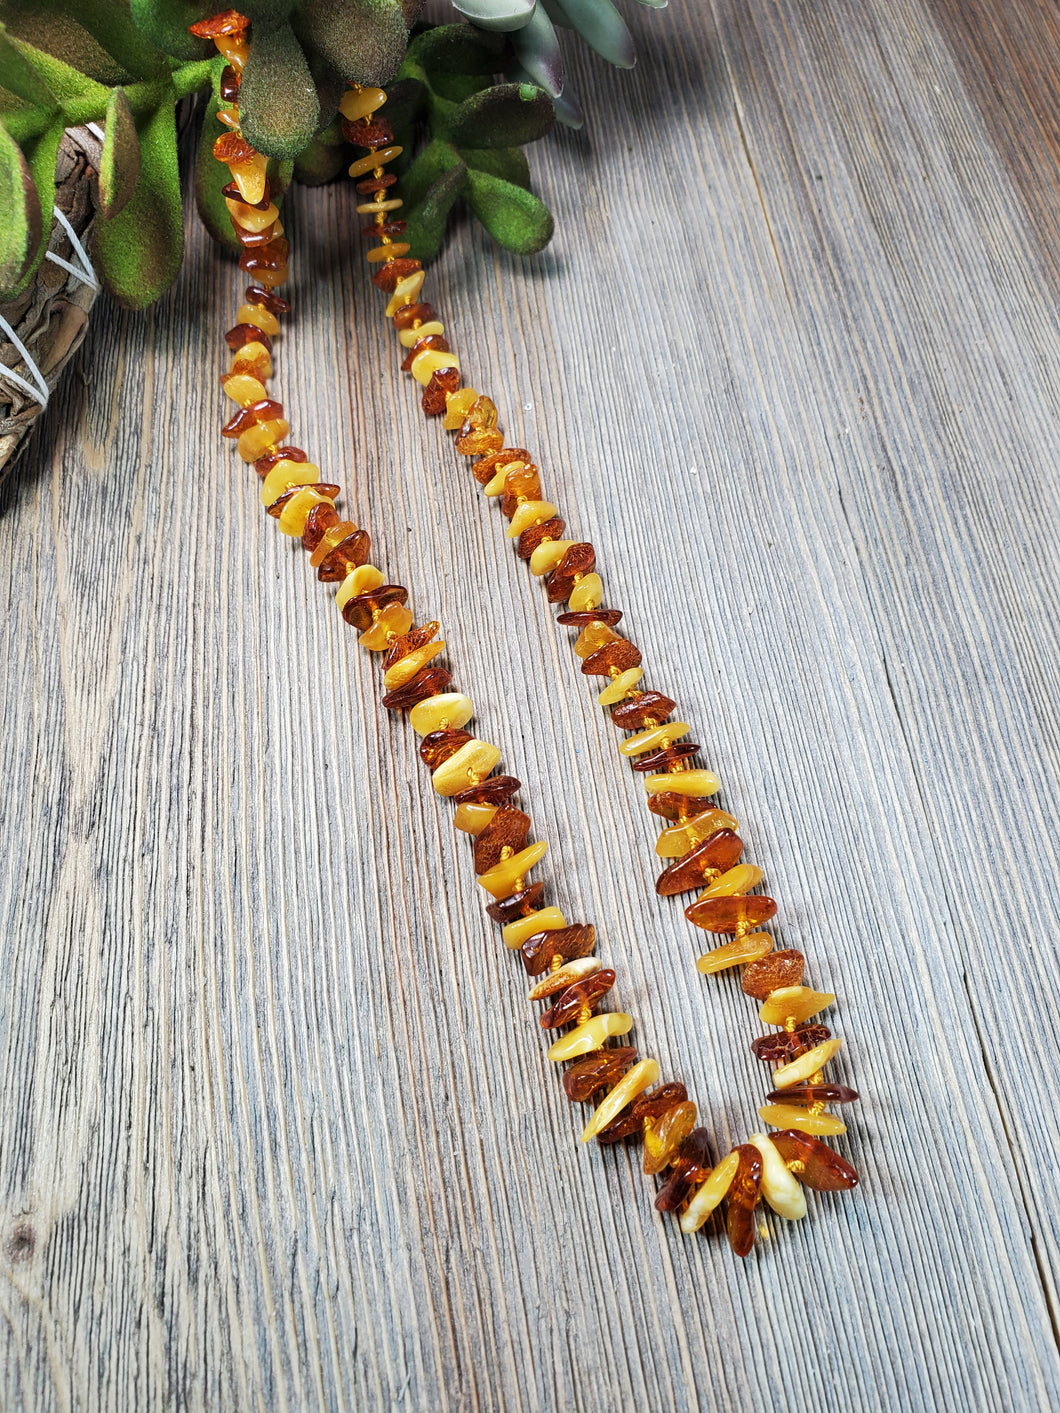 Adult Baltic Amber Necklace, Migraine Necklace